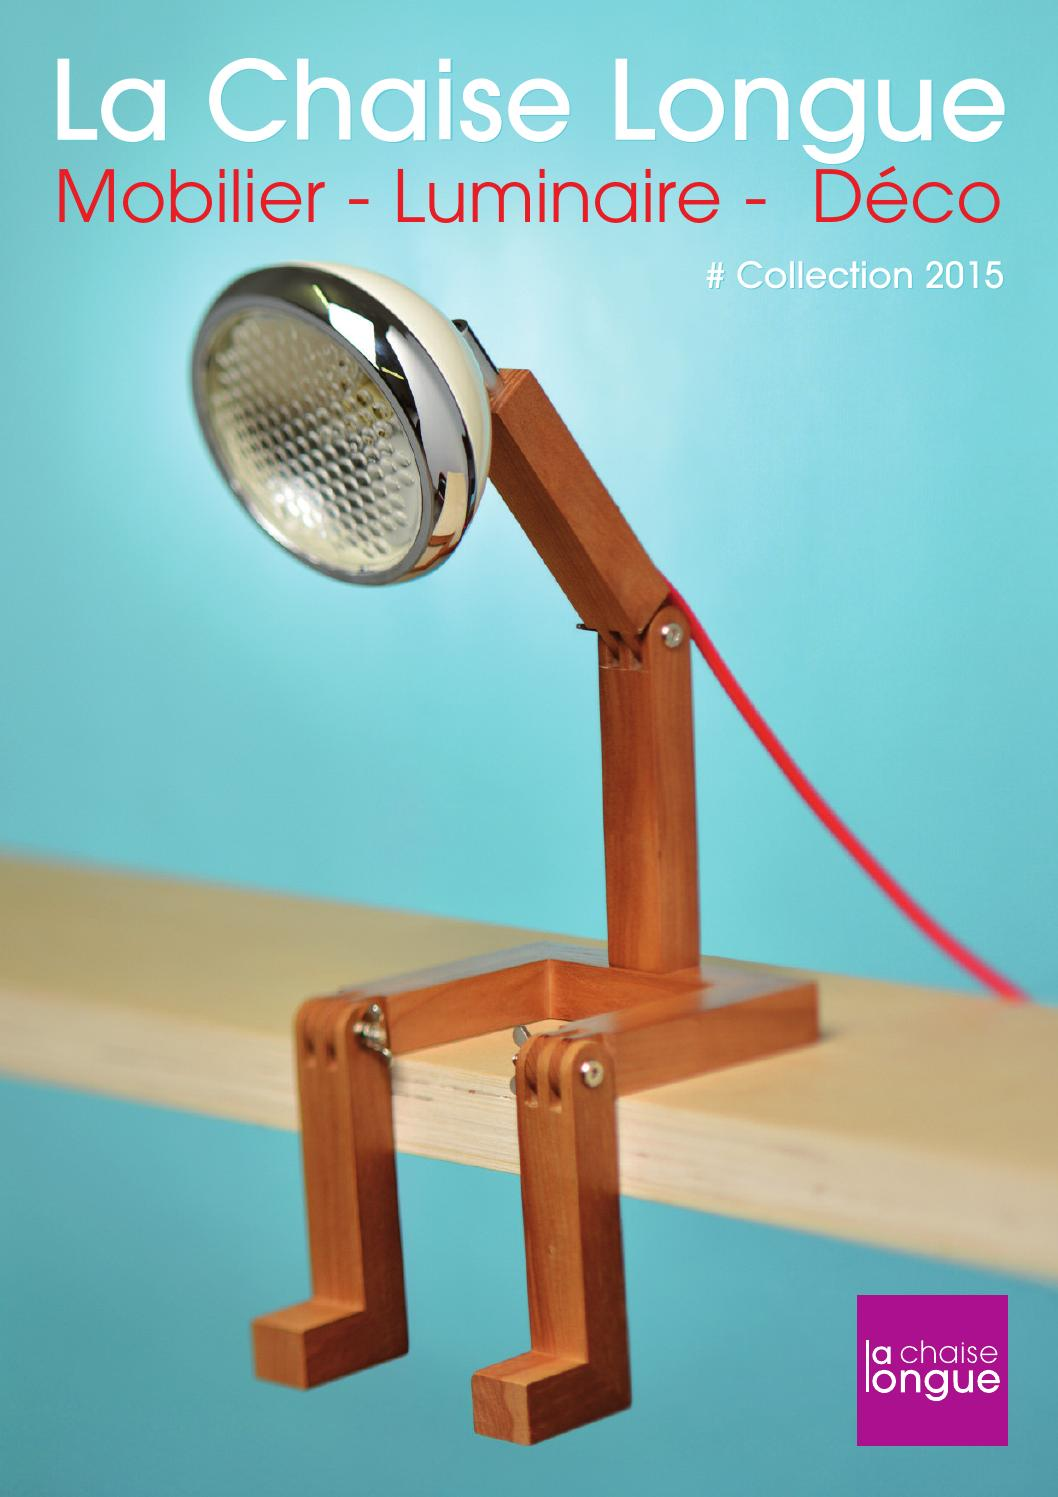 mobilier2015 by la chaise longue issuu